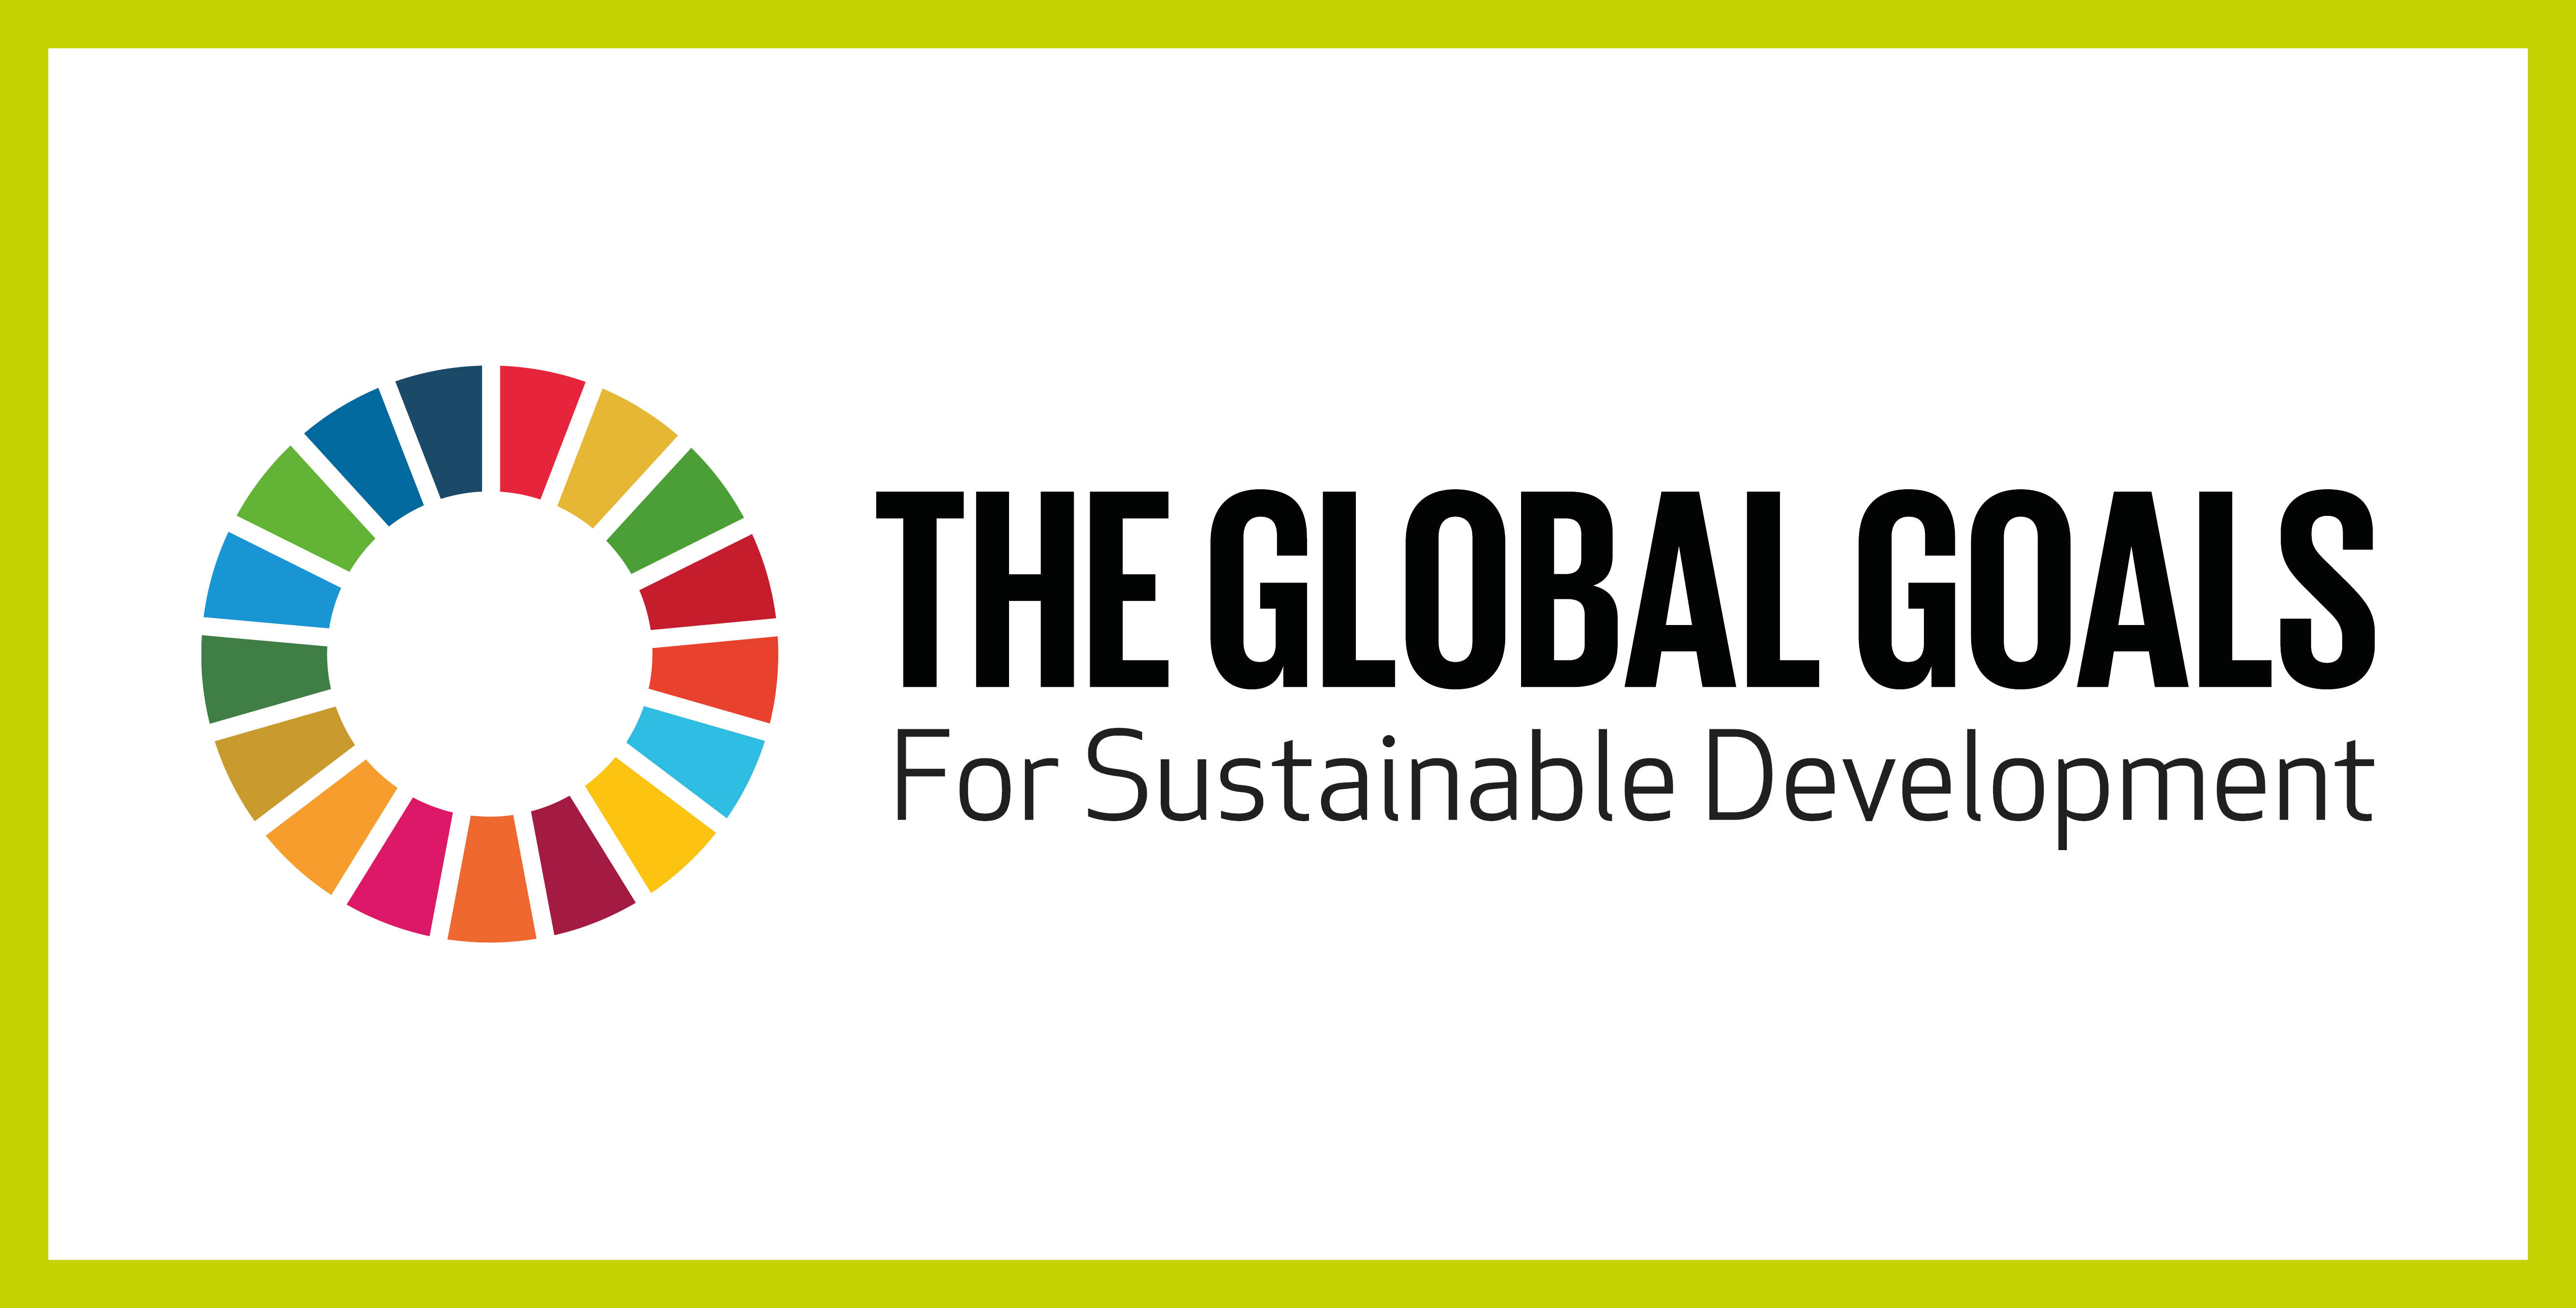 Sustainable development goals and Global Mental Health